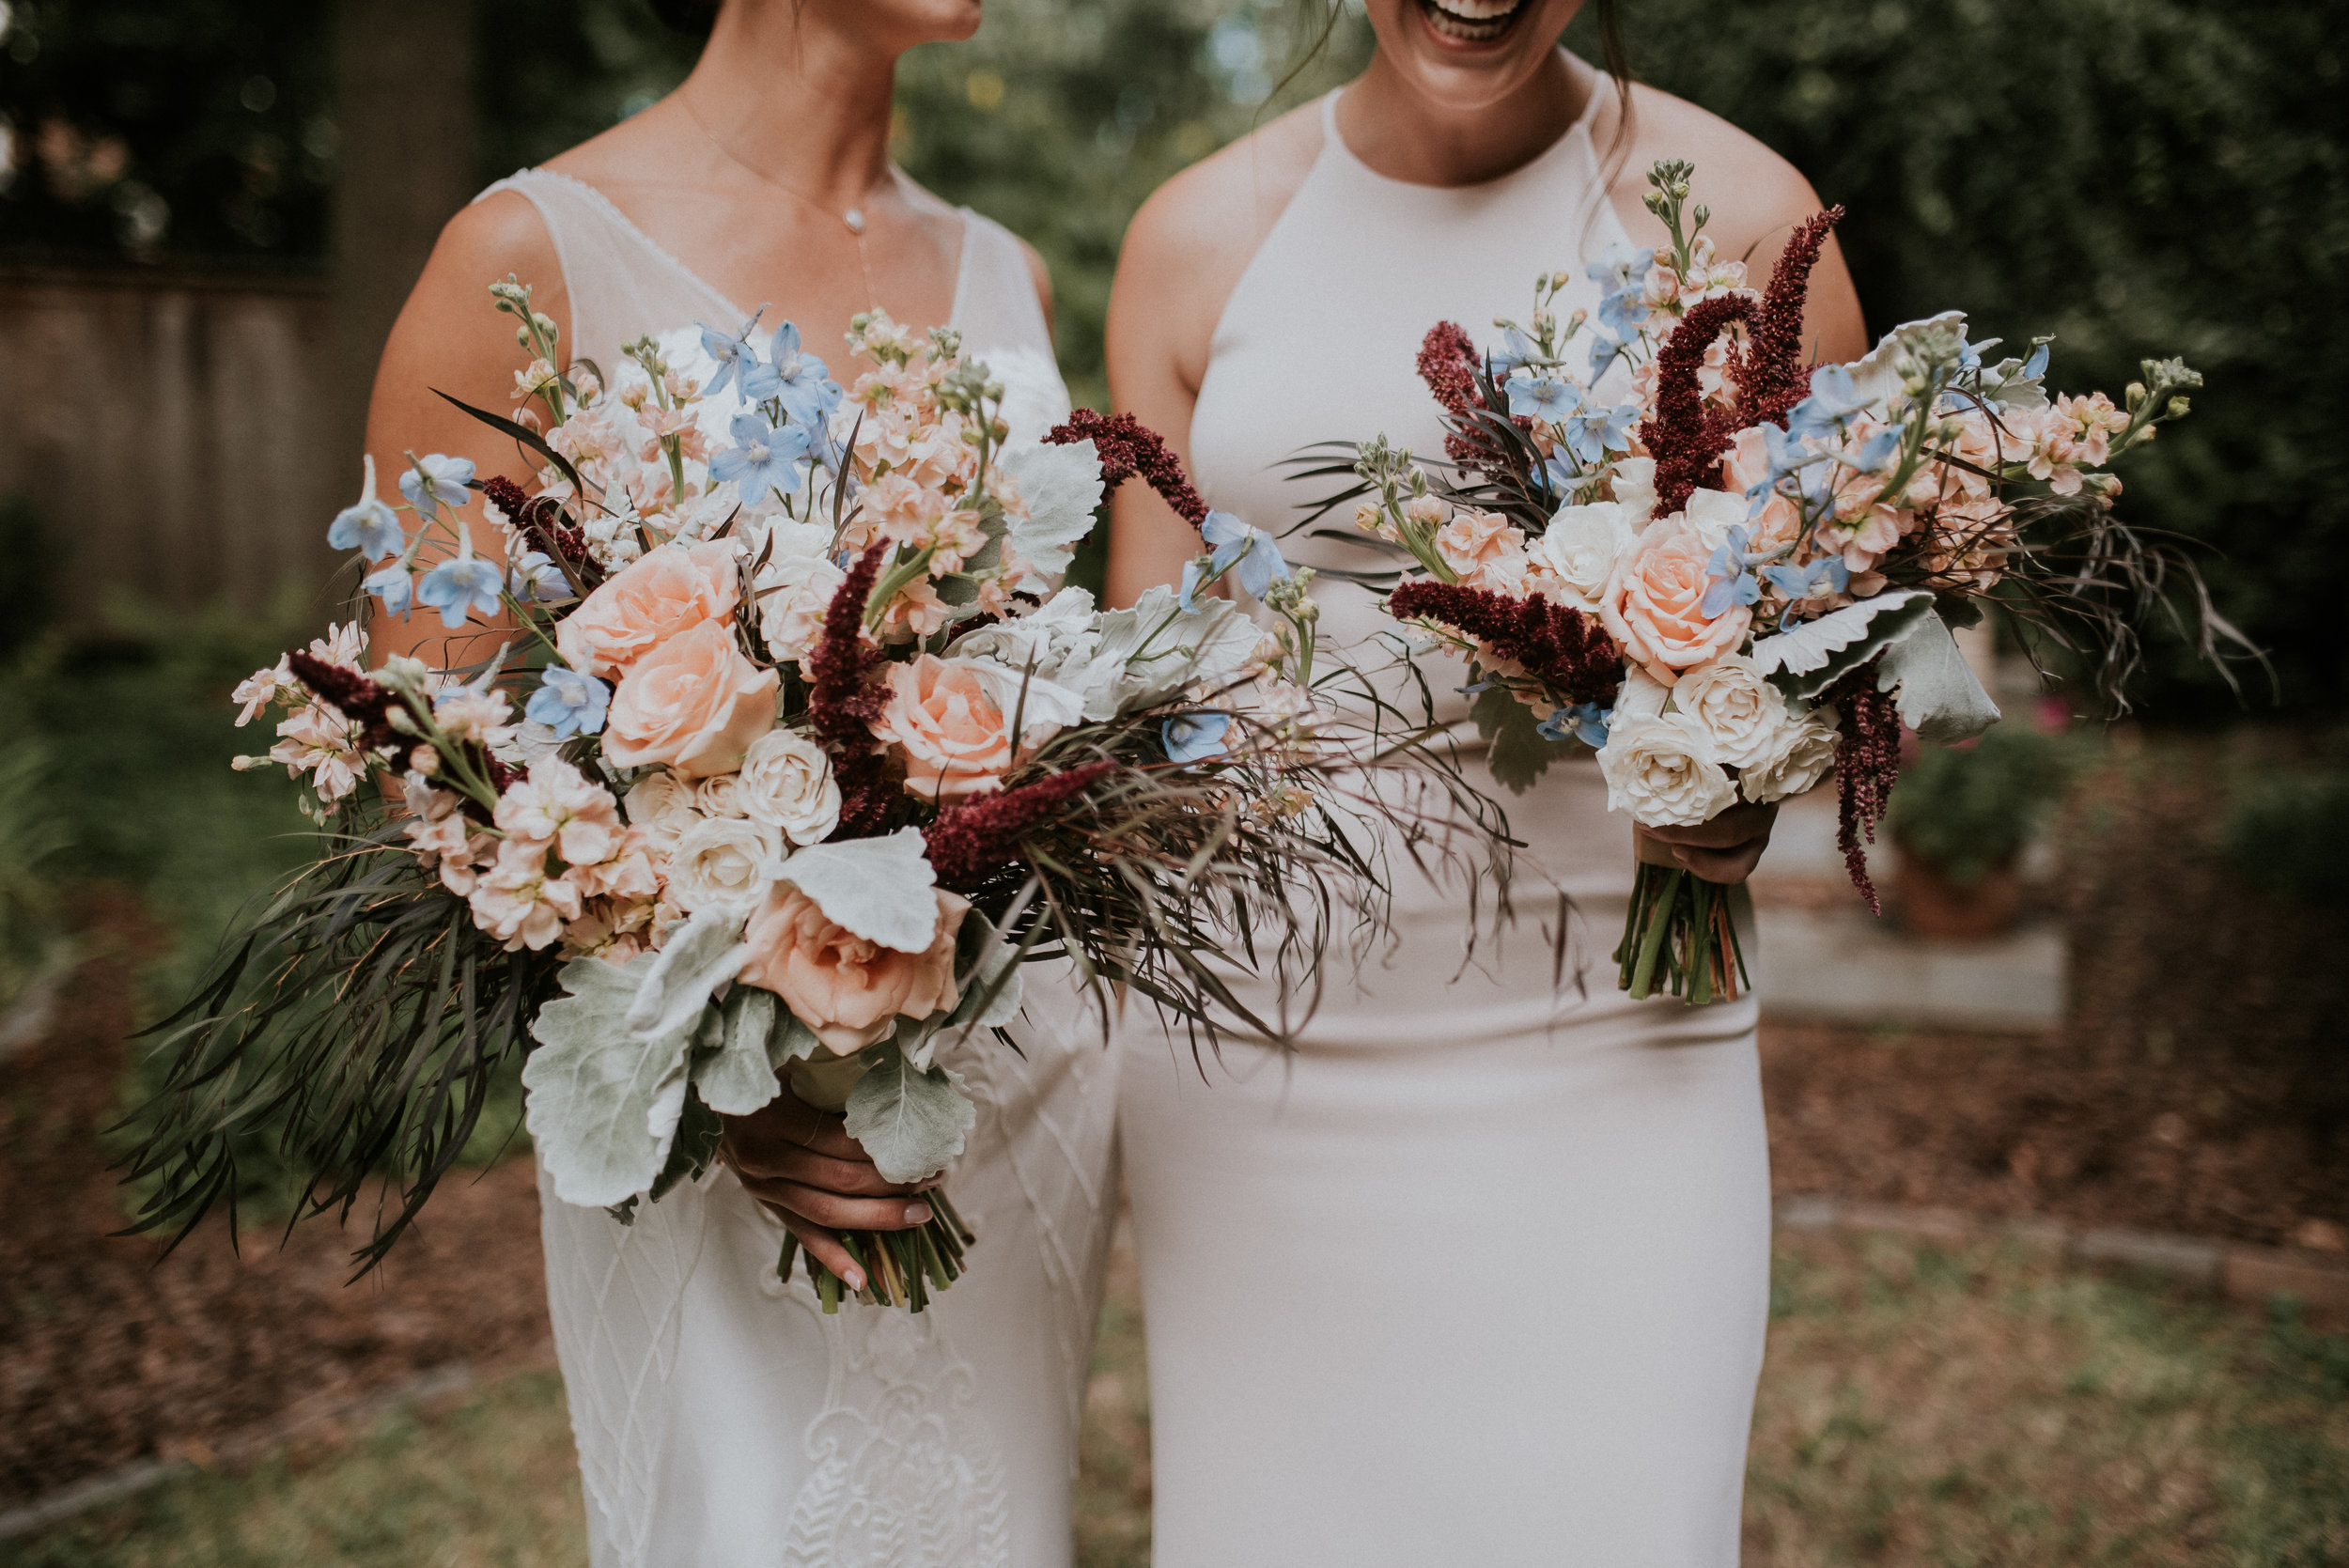 Bride and bridesmaid holding oversized wildflower bouquets